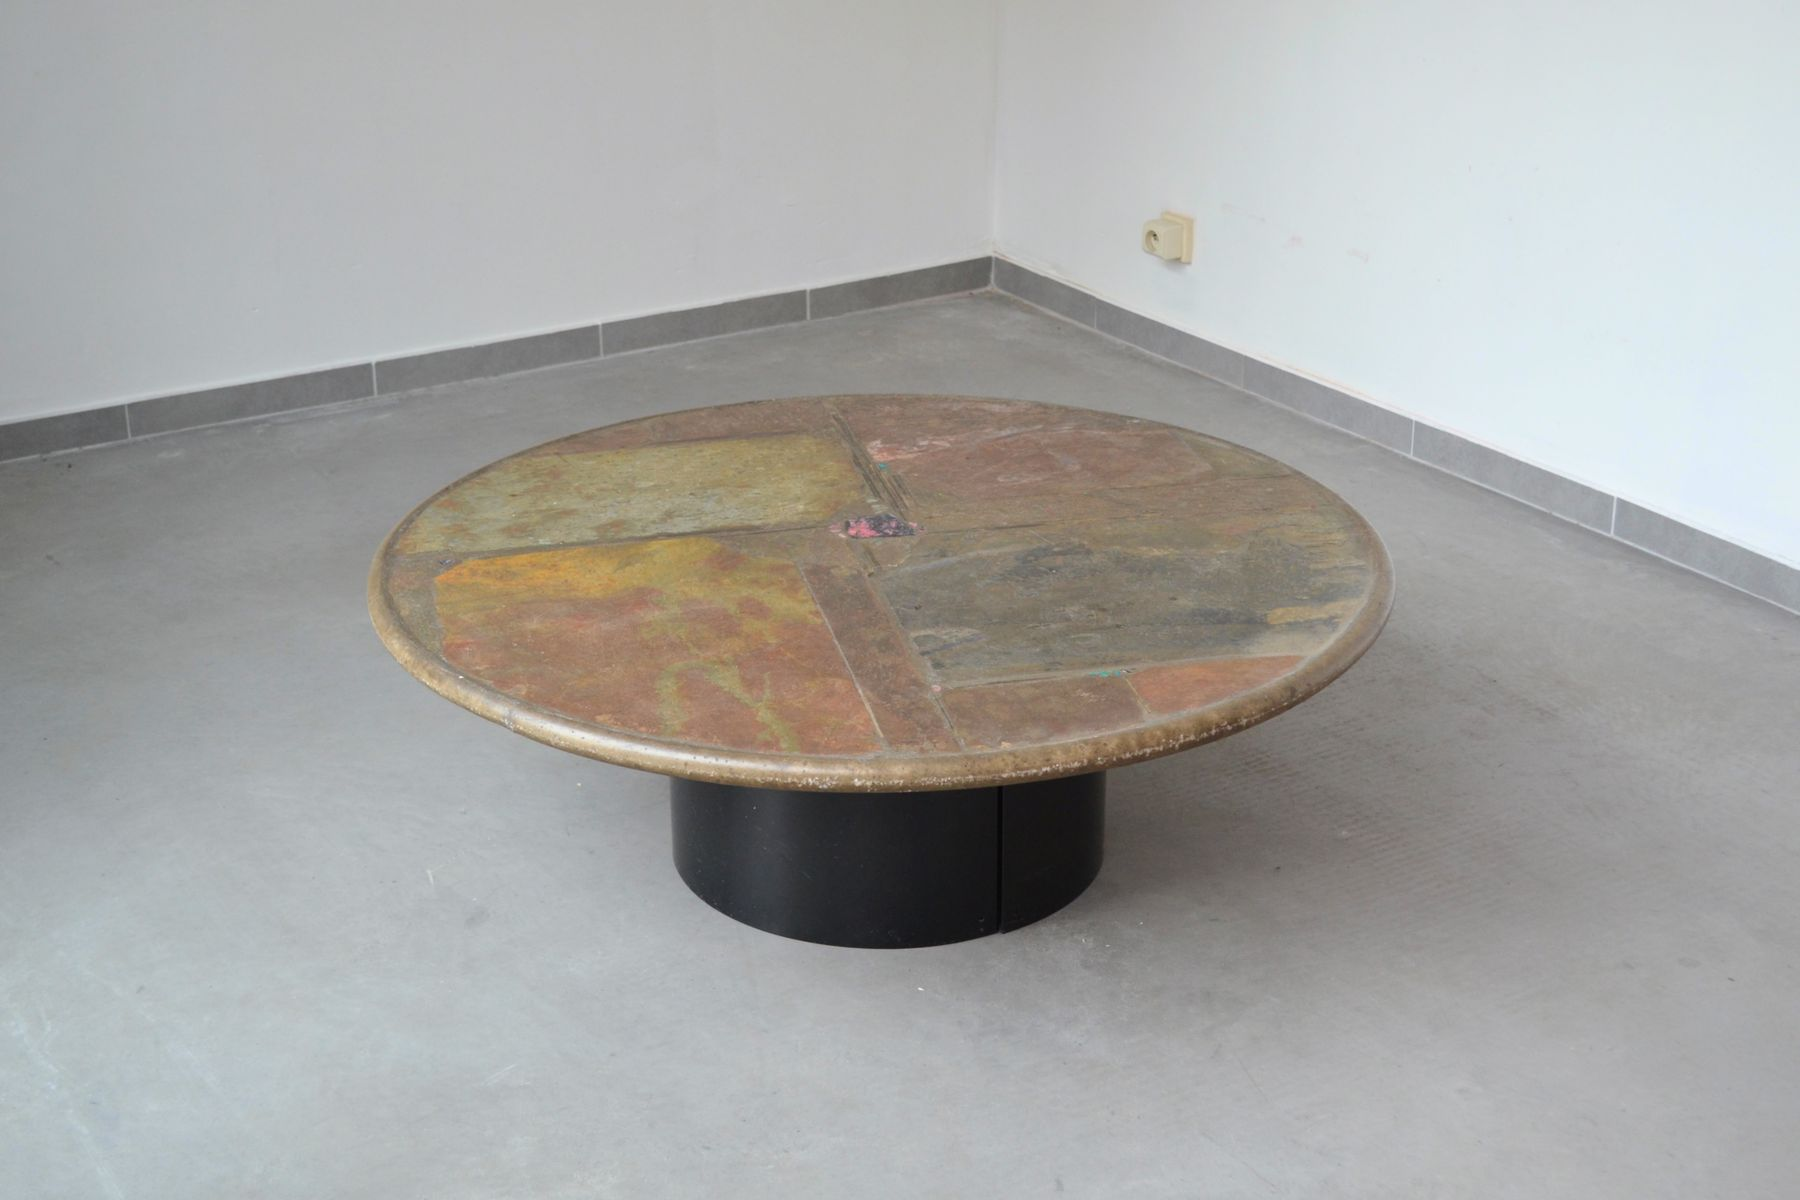 Slate stone coffee table by paul kingma 1993 for sale at Stone coffee table